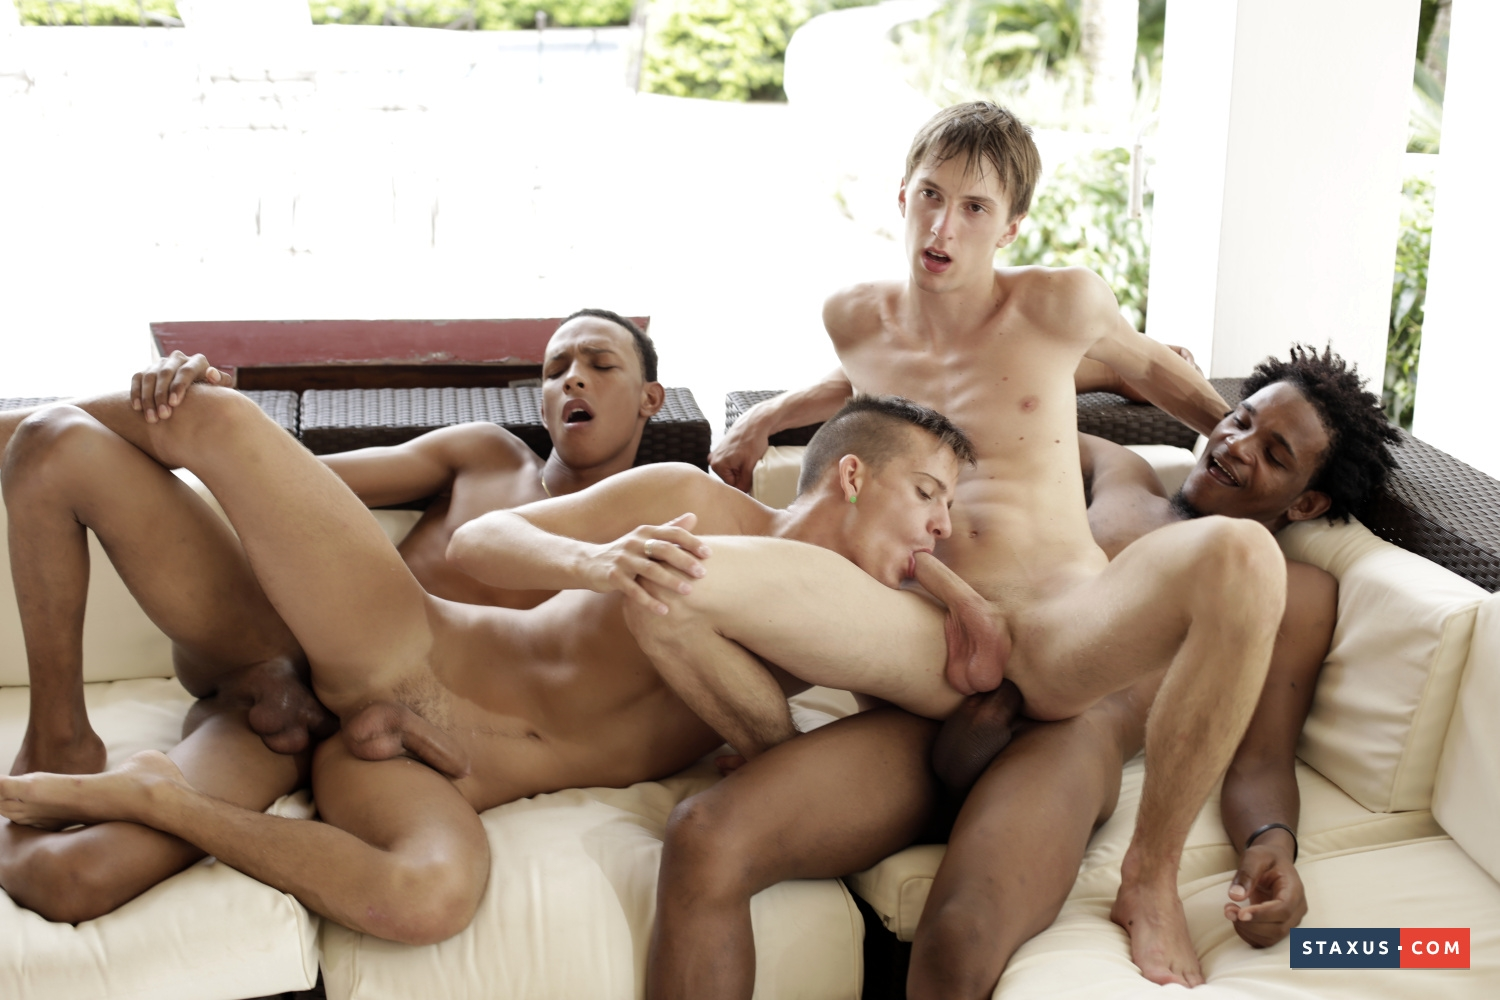 free-boy-force-group-sex-hot-girls-naked-picture